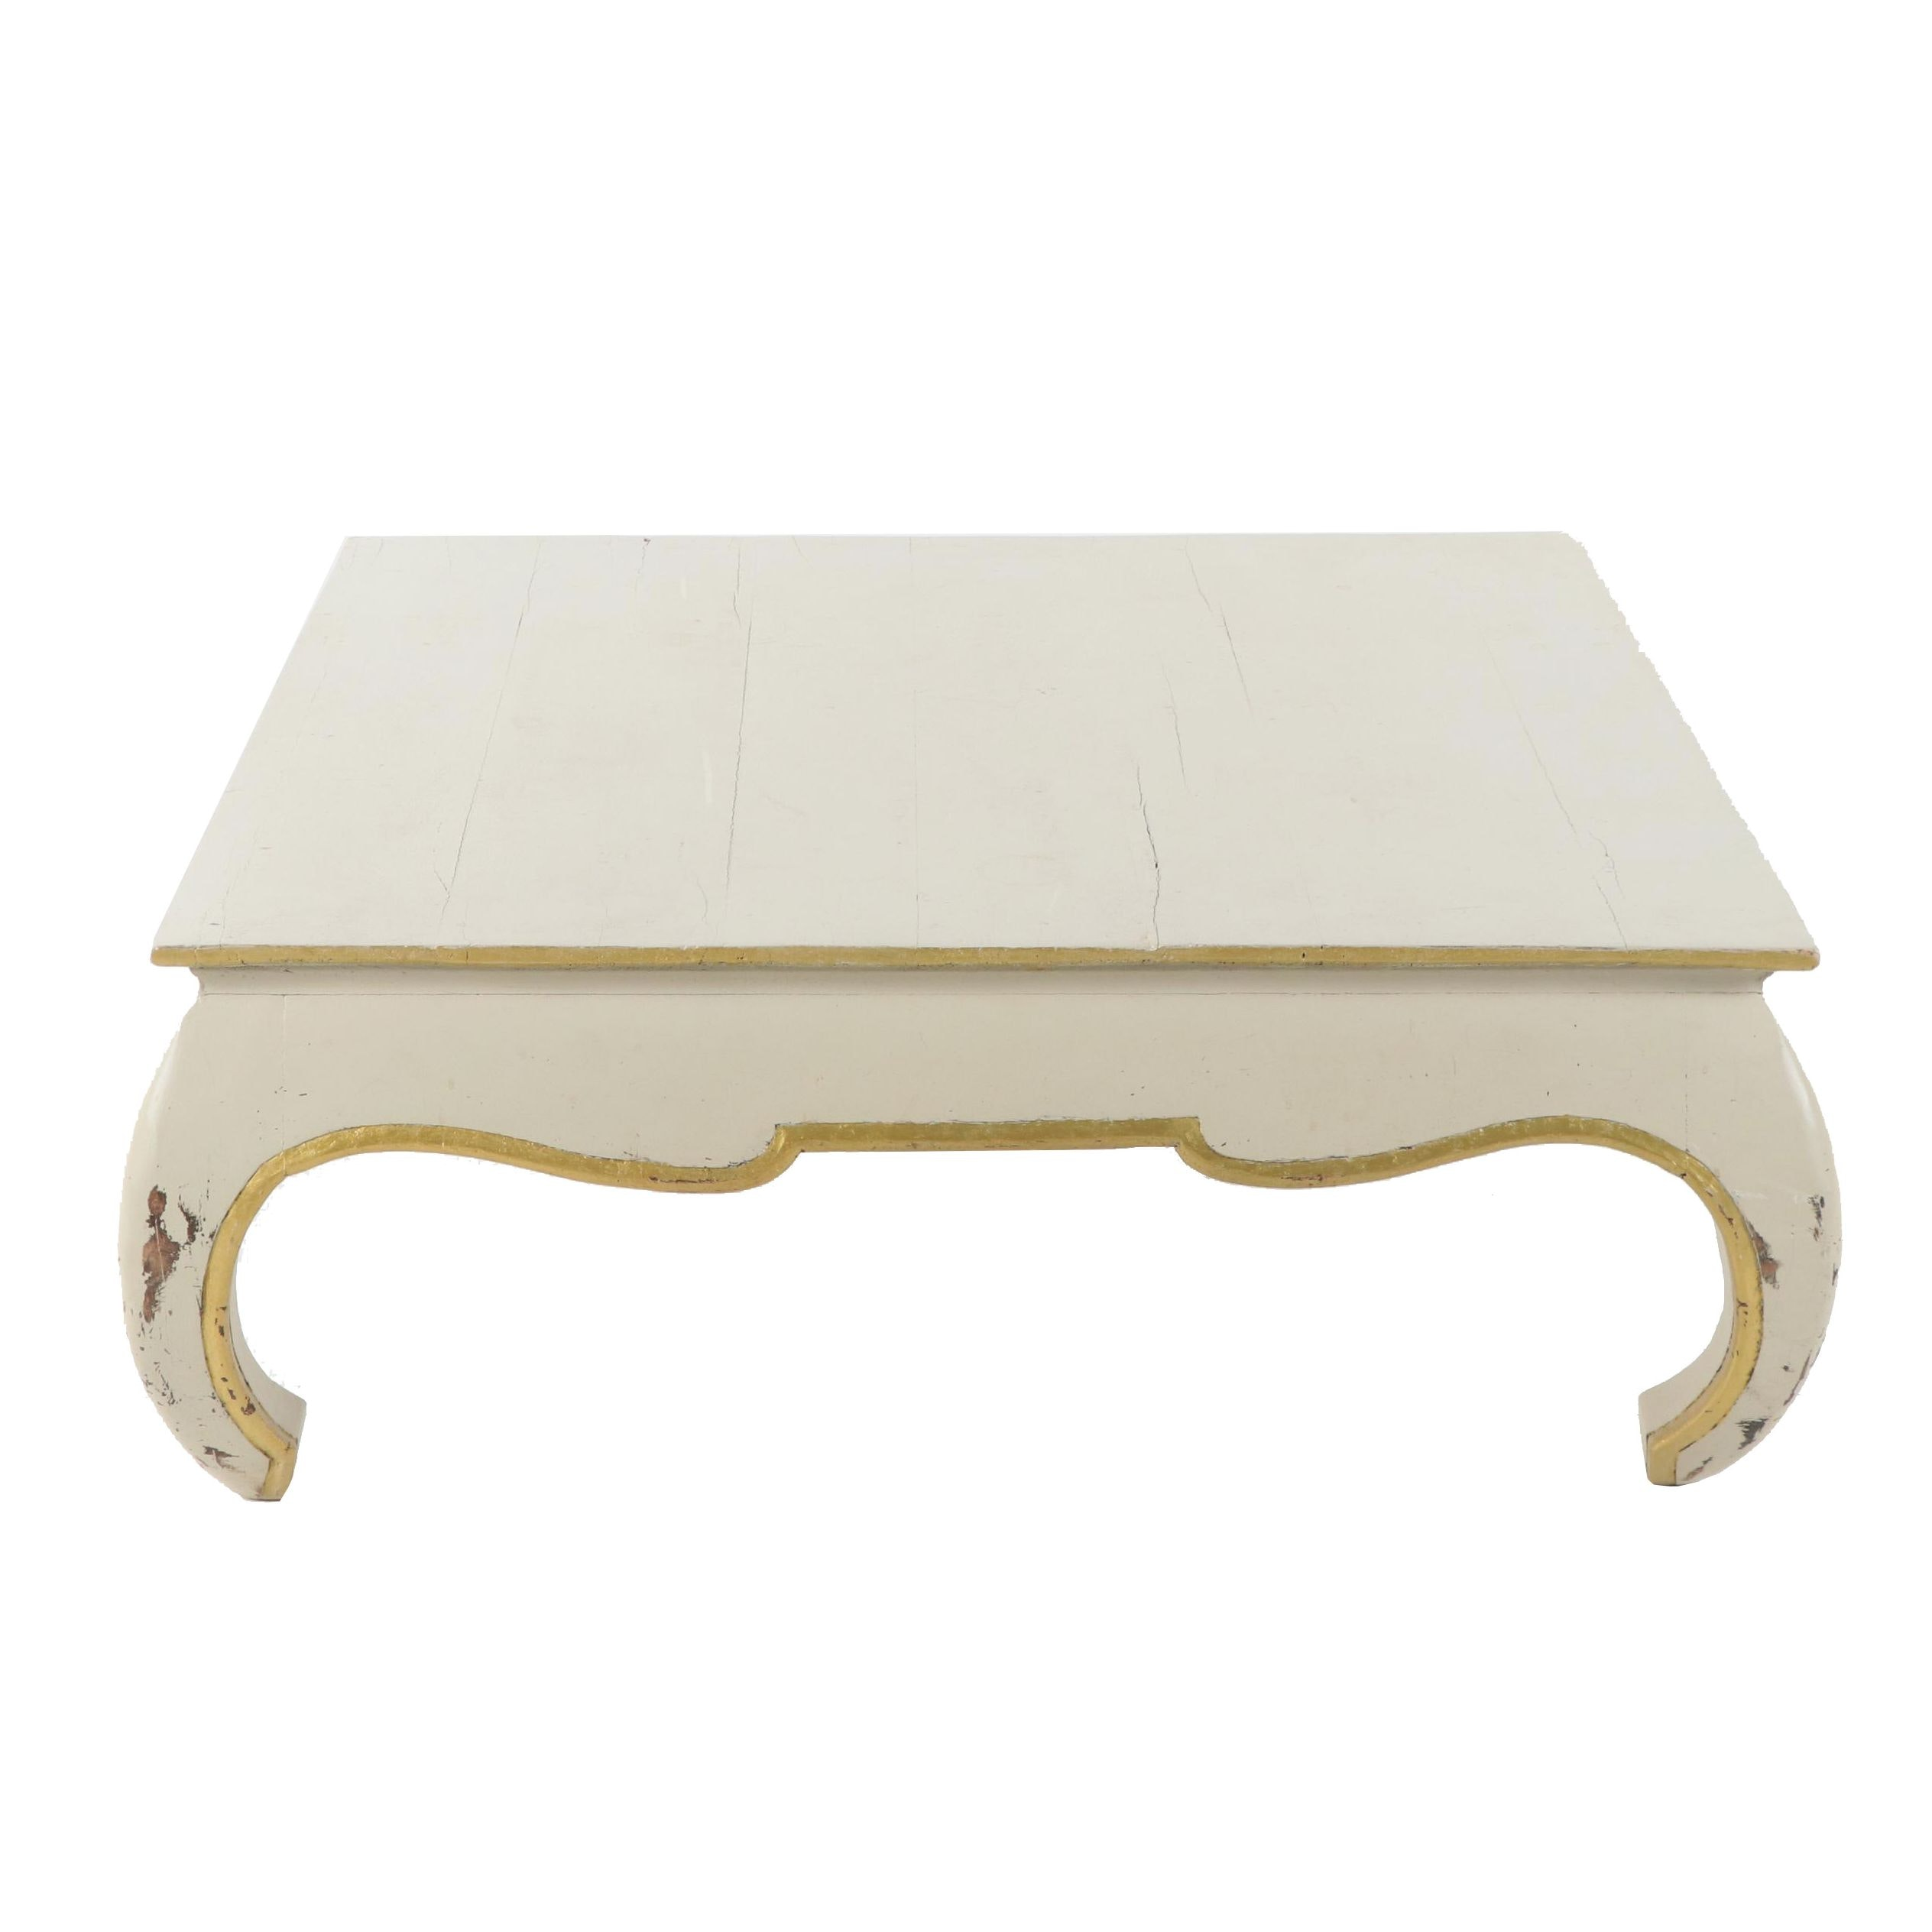 Painted Wooden Curved Leg Coffee Table, 20th Century